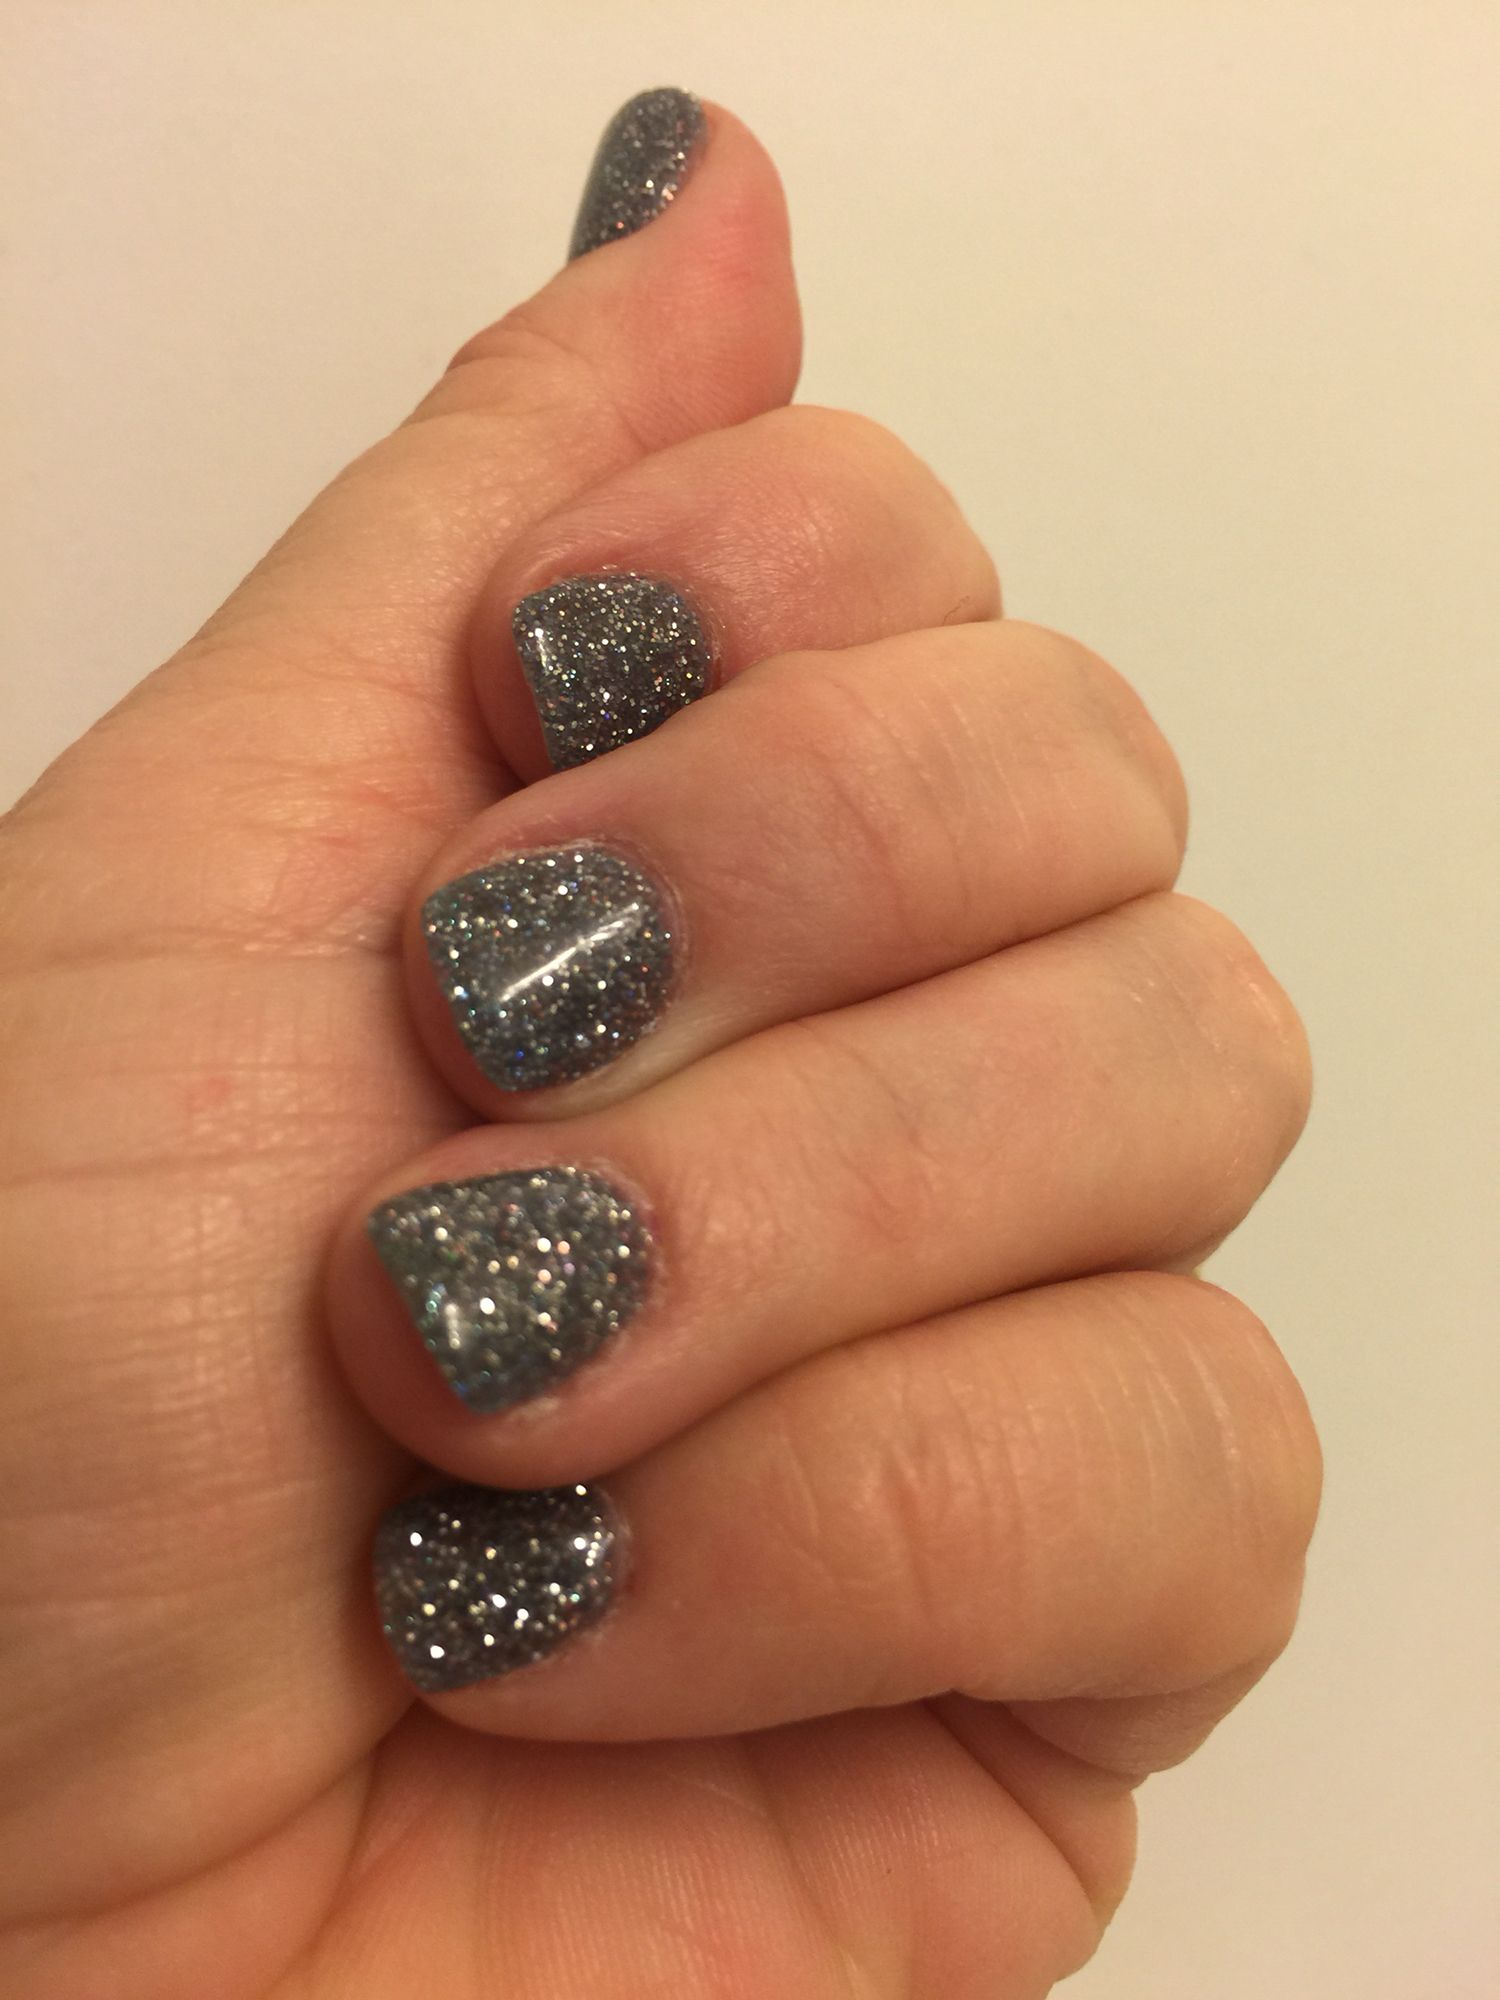 Glitter SNS nails | Nails | Pinterest | Sns nails, Manicure and Makeup